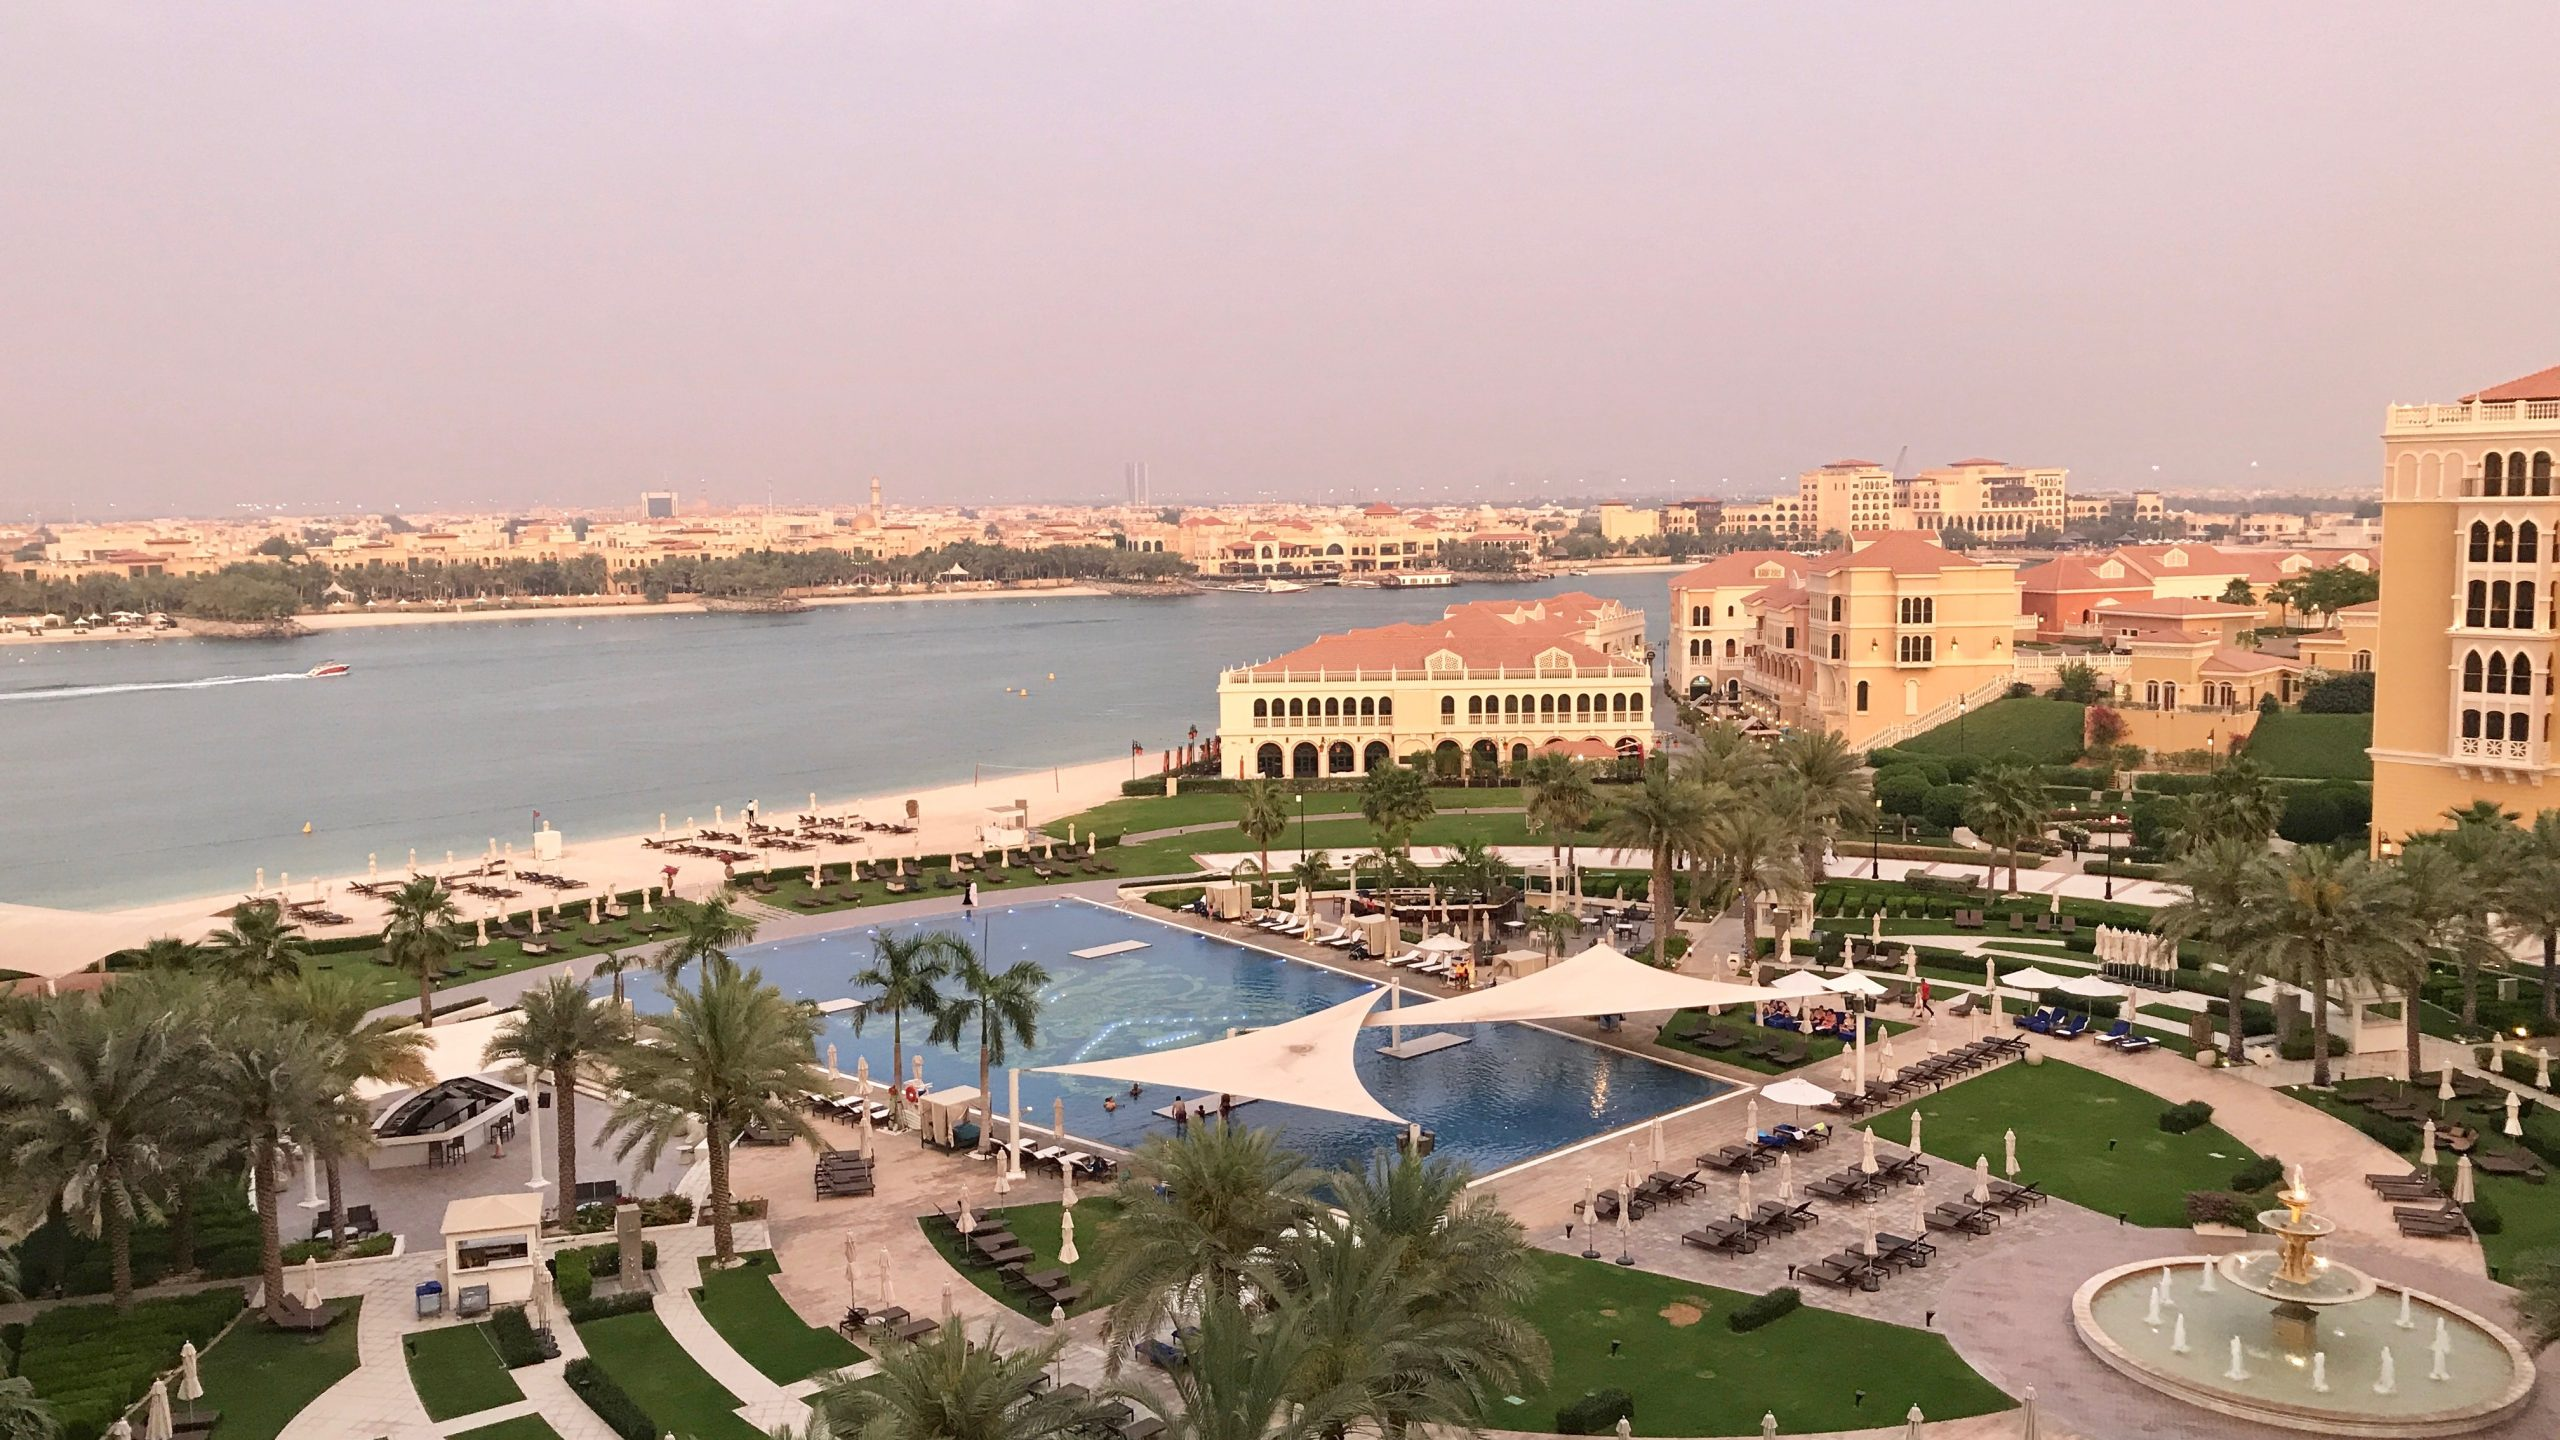 Luxushotel The Ritz-Carlton Abu Dhab